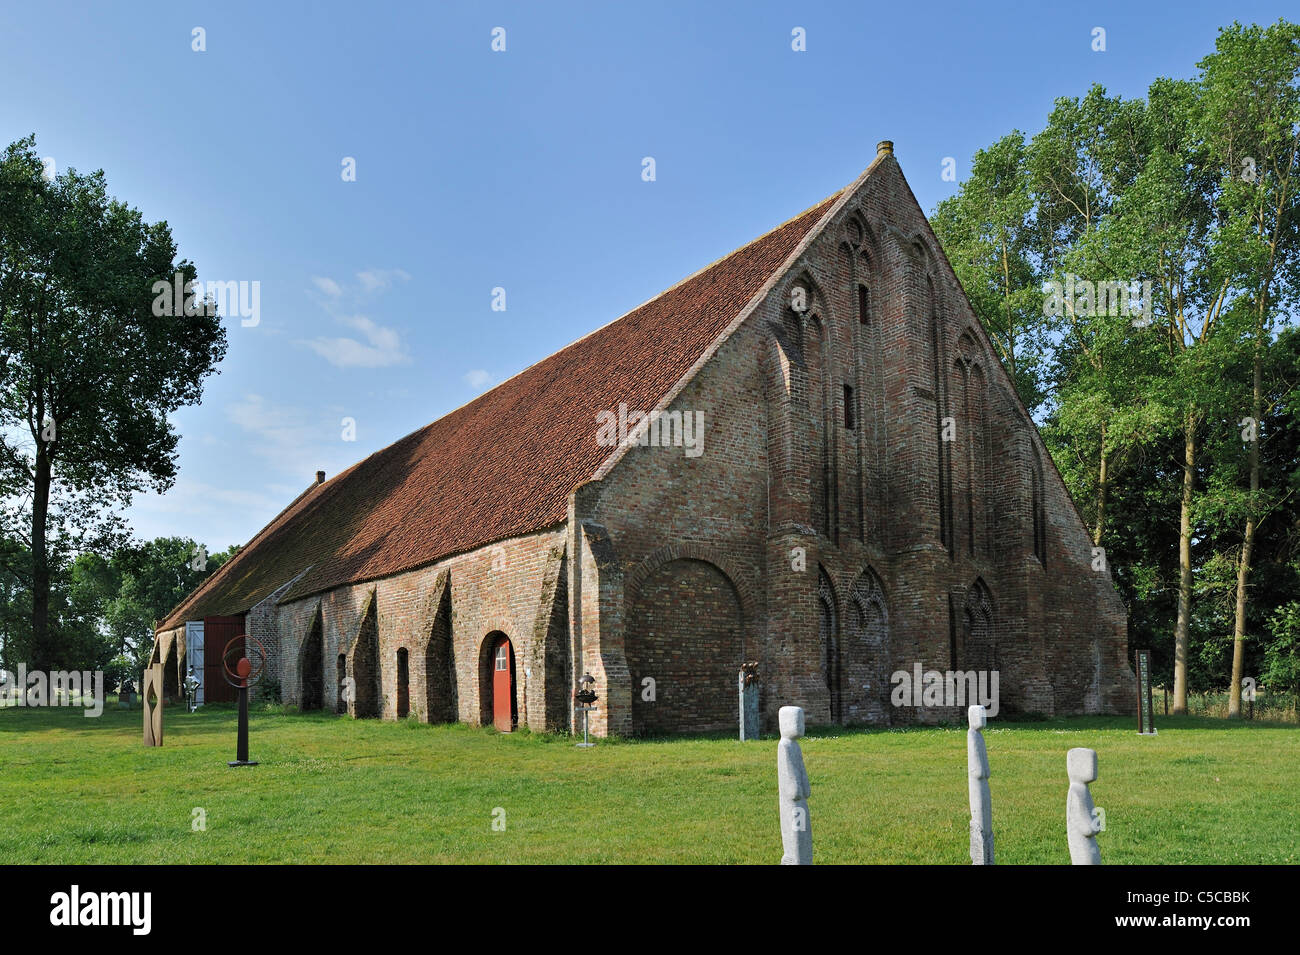 Ter Doest barn of the Cistercian abbey farm, Lissewege in West Flanders, Belgium Stock Photo